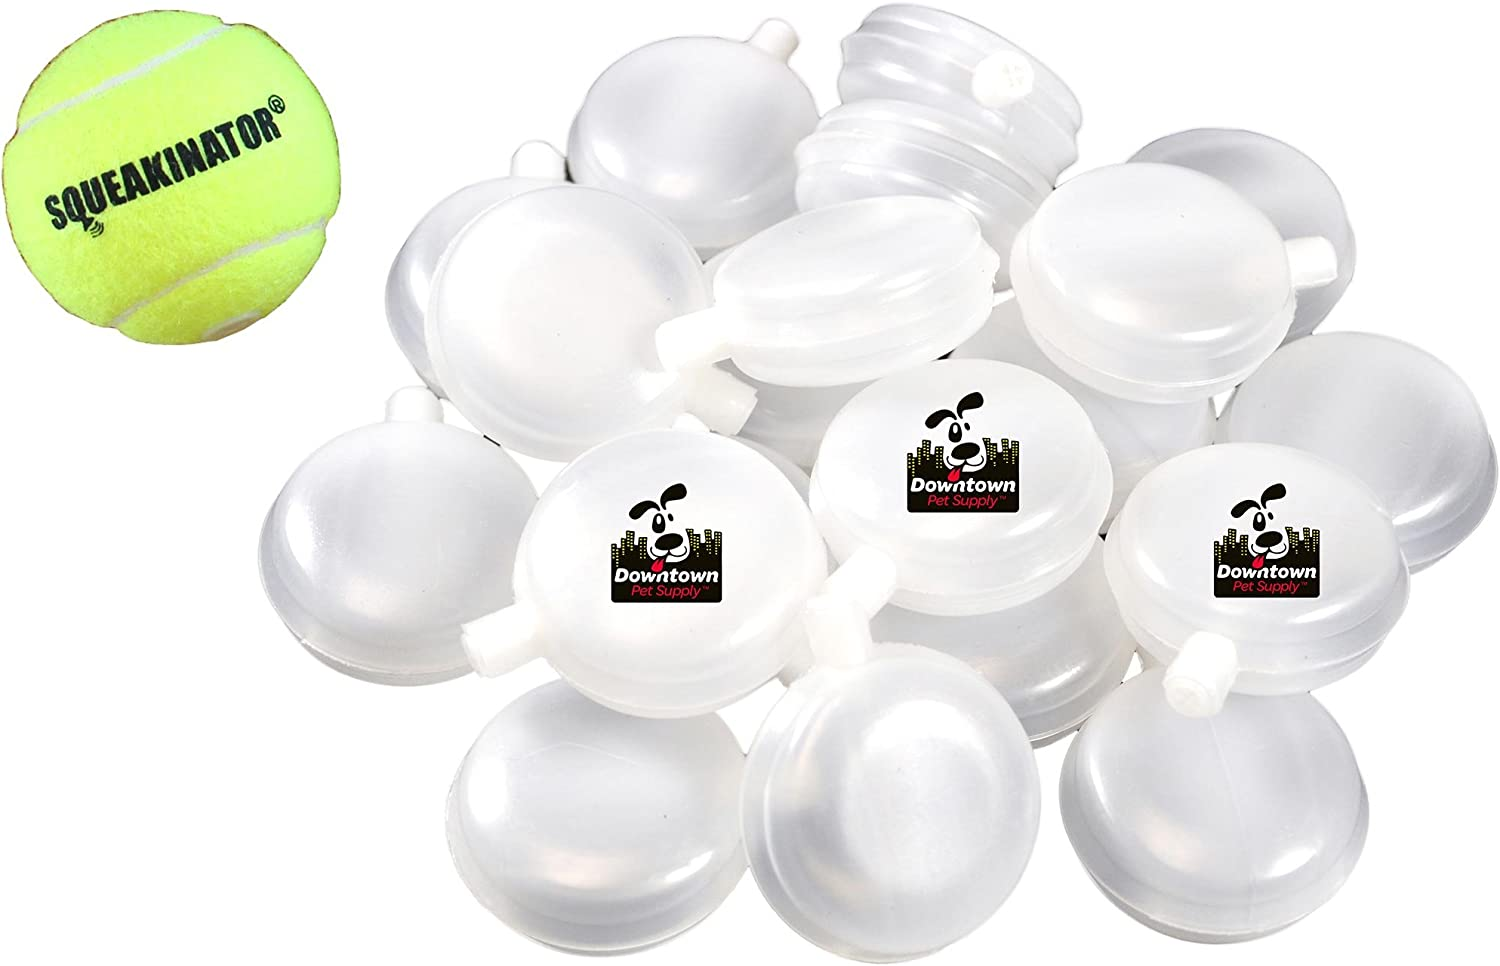 30 Replacement Squeakers, Bellowed + FREE Tennis Ball that SQUEAKS, THE SQUEAKINATOR